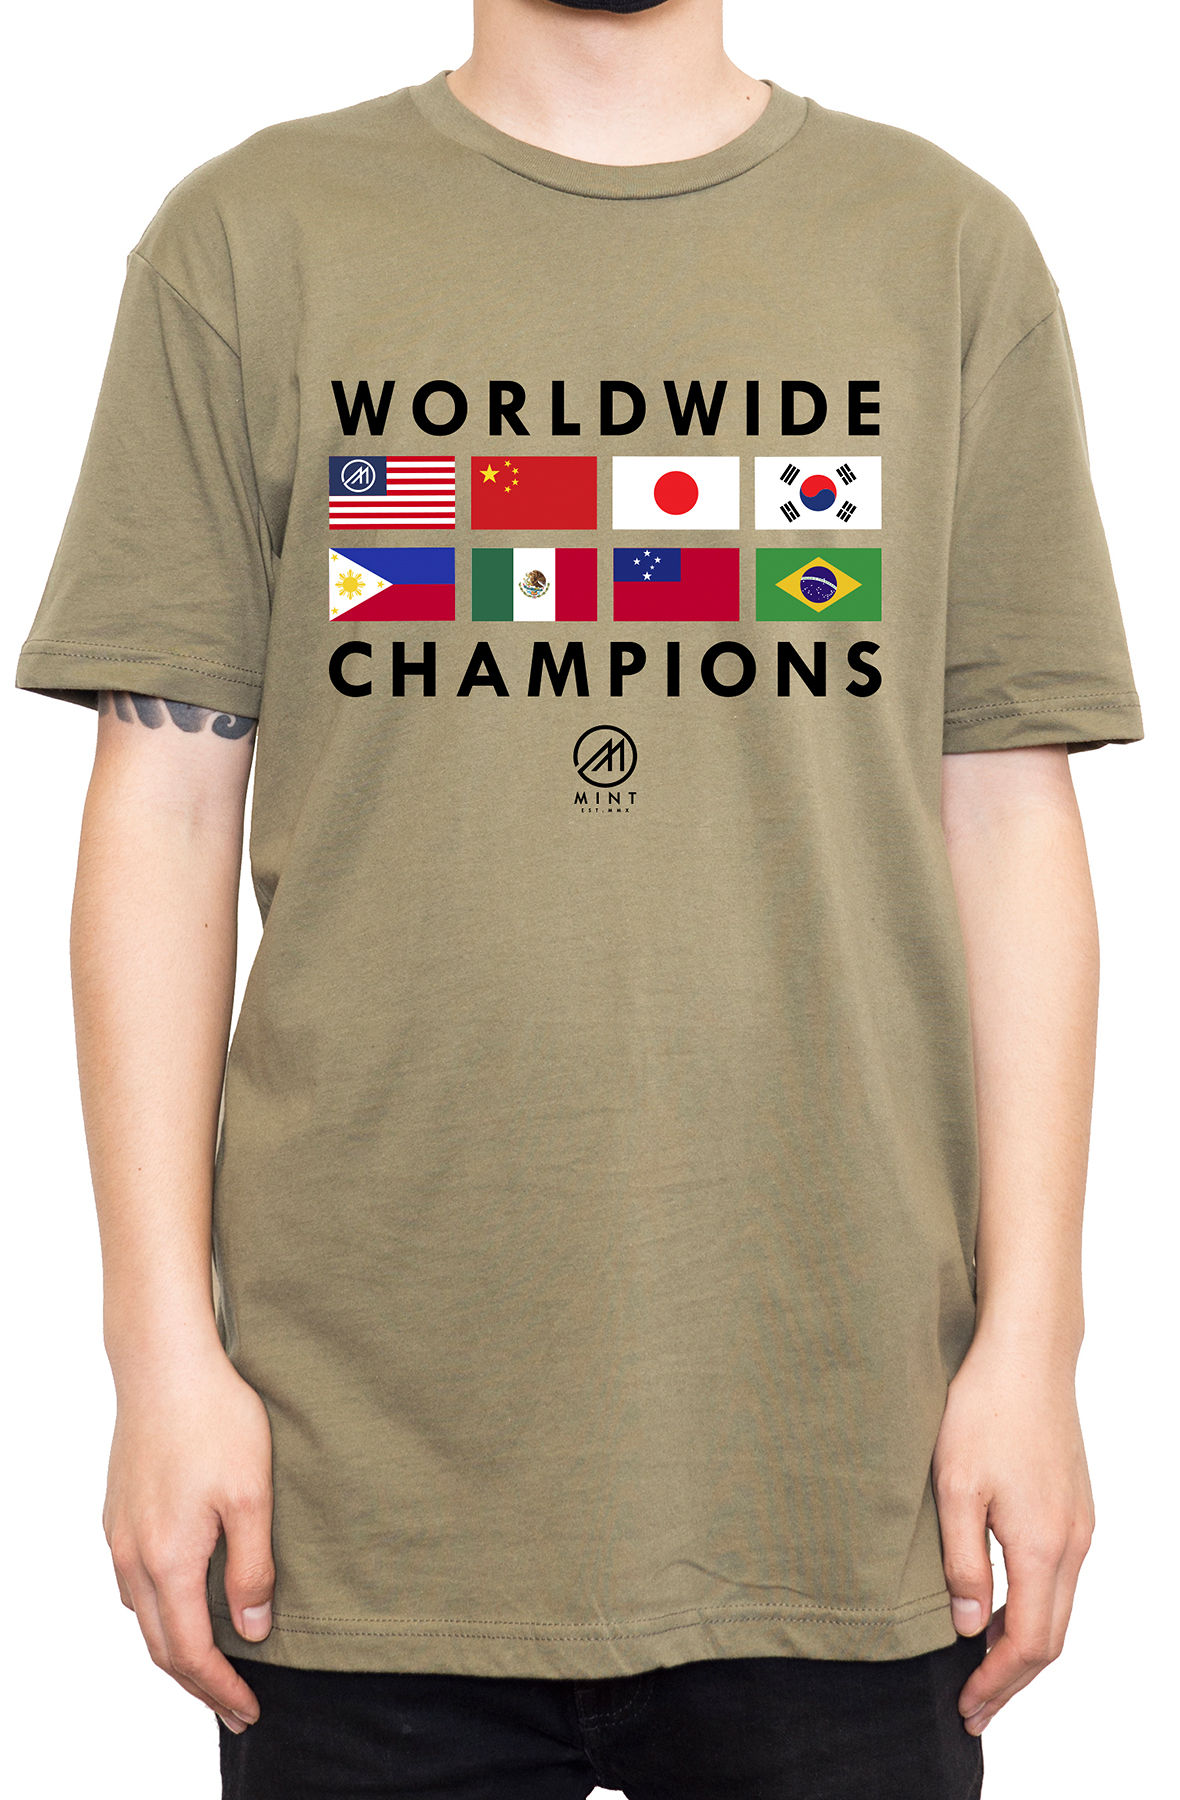 Image of The Mint Flags 2 Tee in Olive